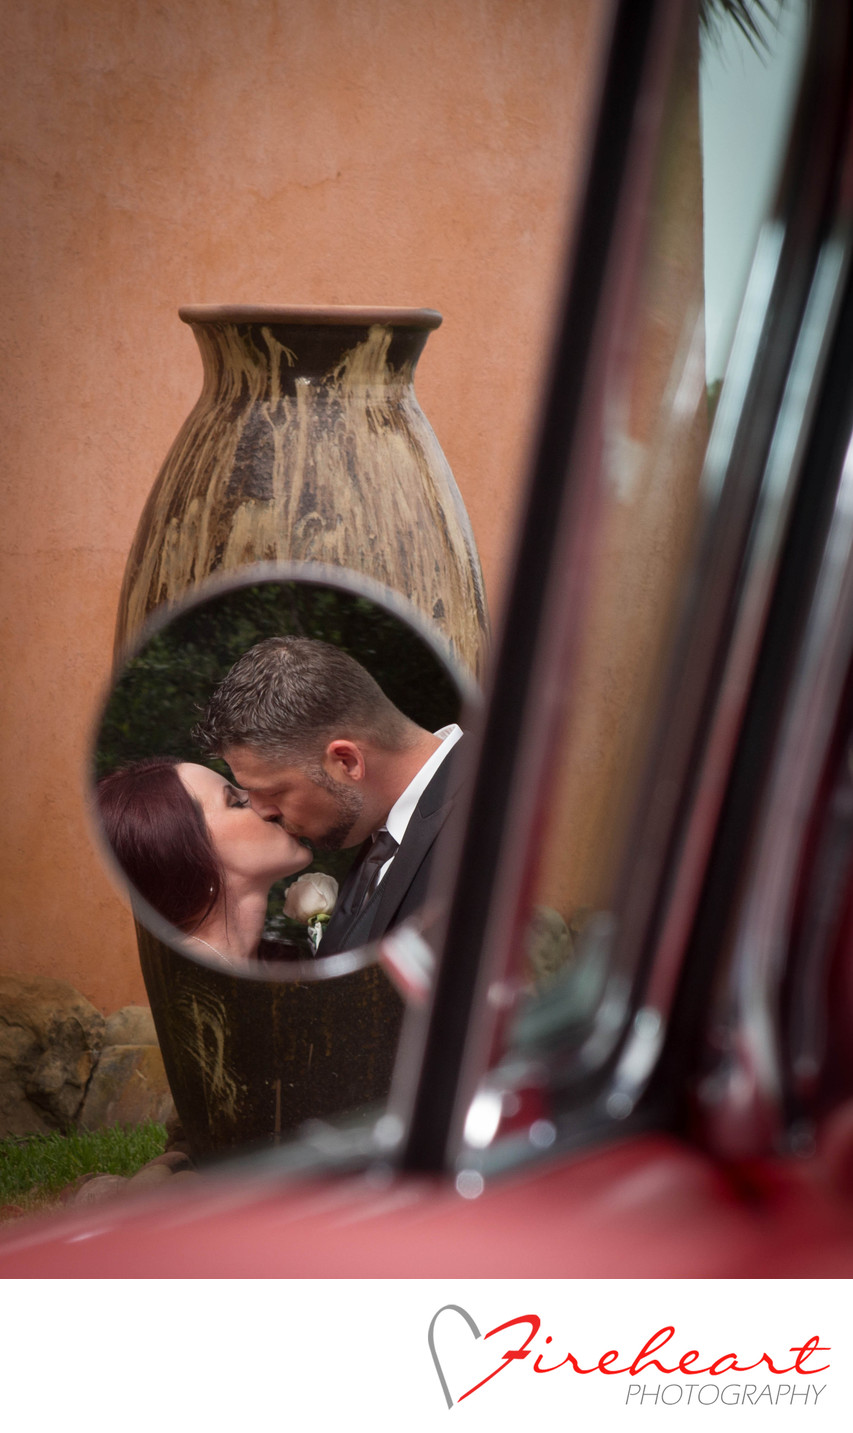 Wedding reflections in Mirror